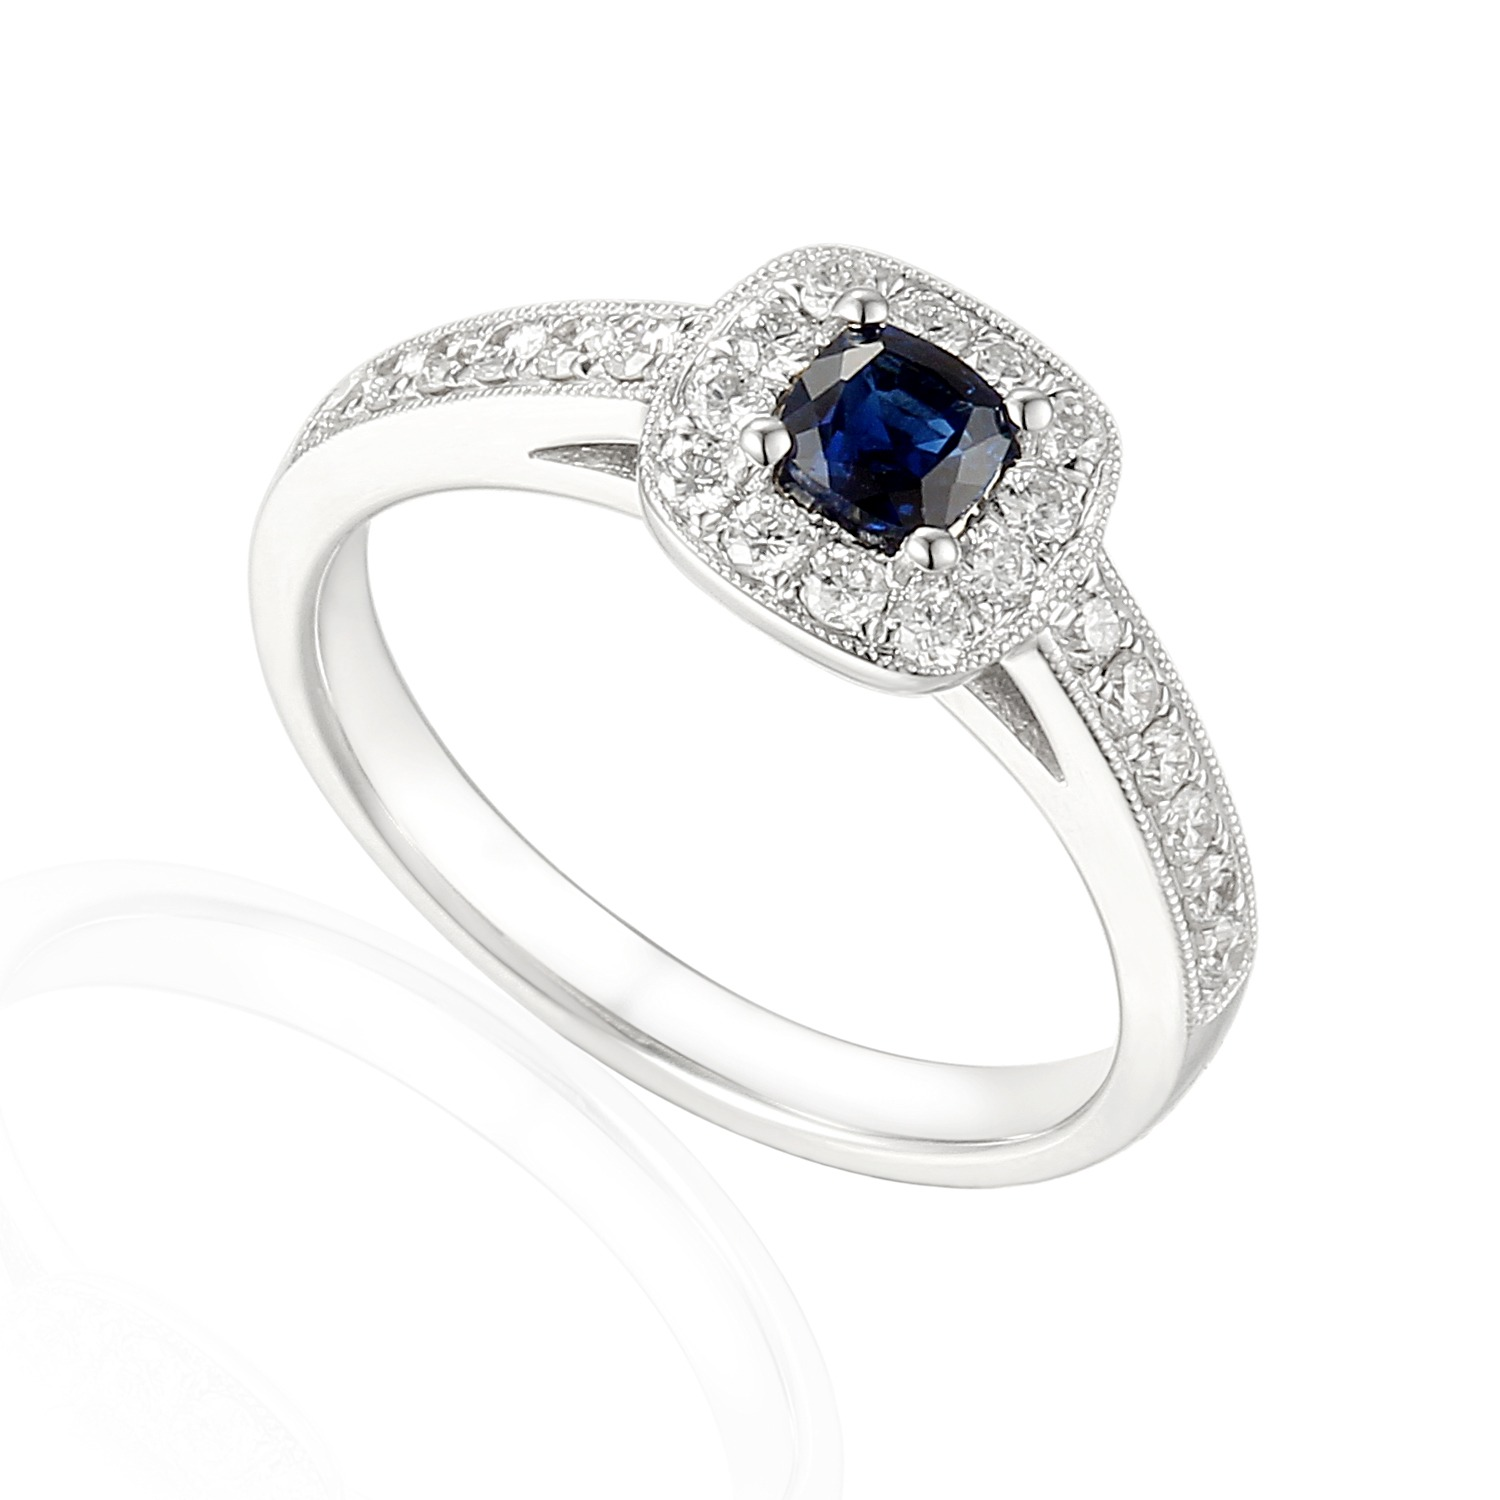 Sapphire and diamond 18ct white gold cushion cut halo